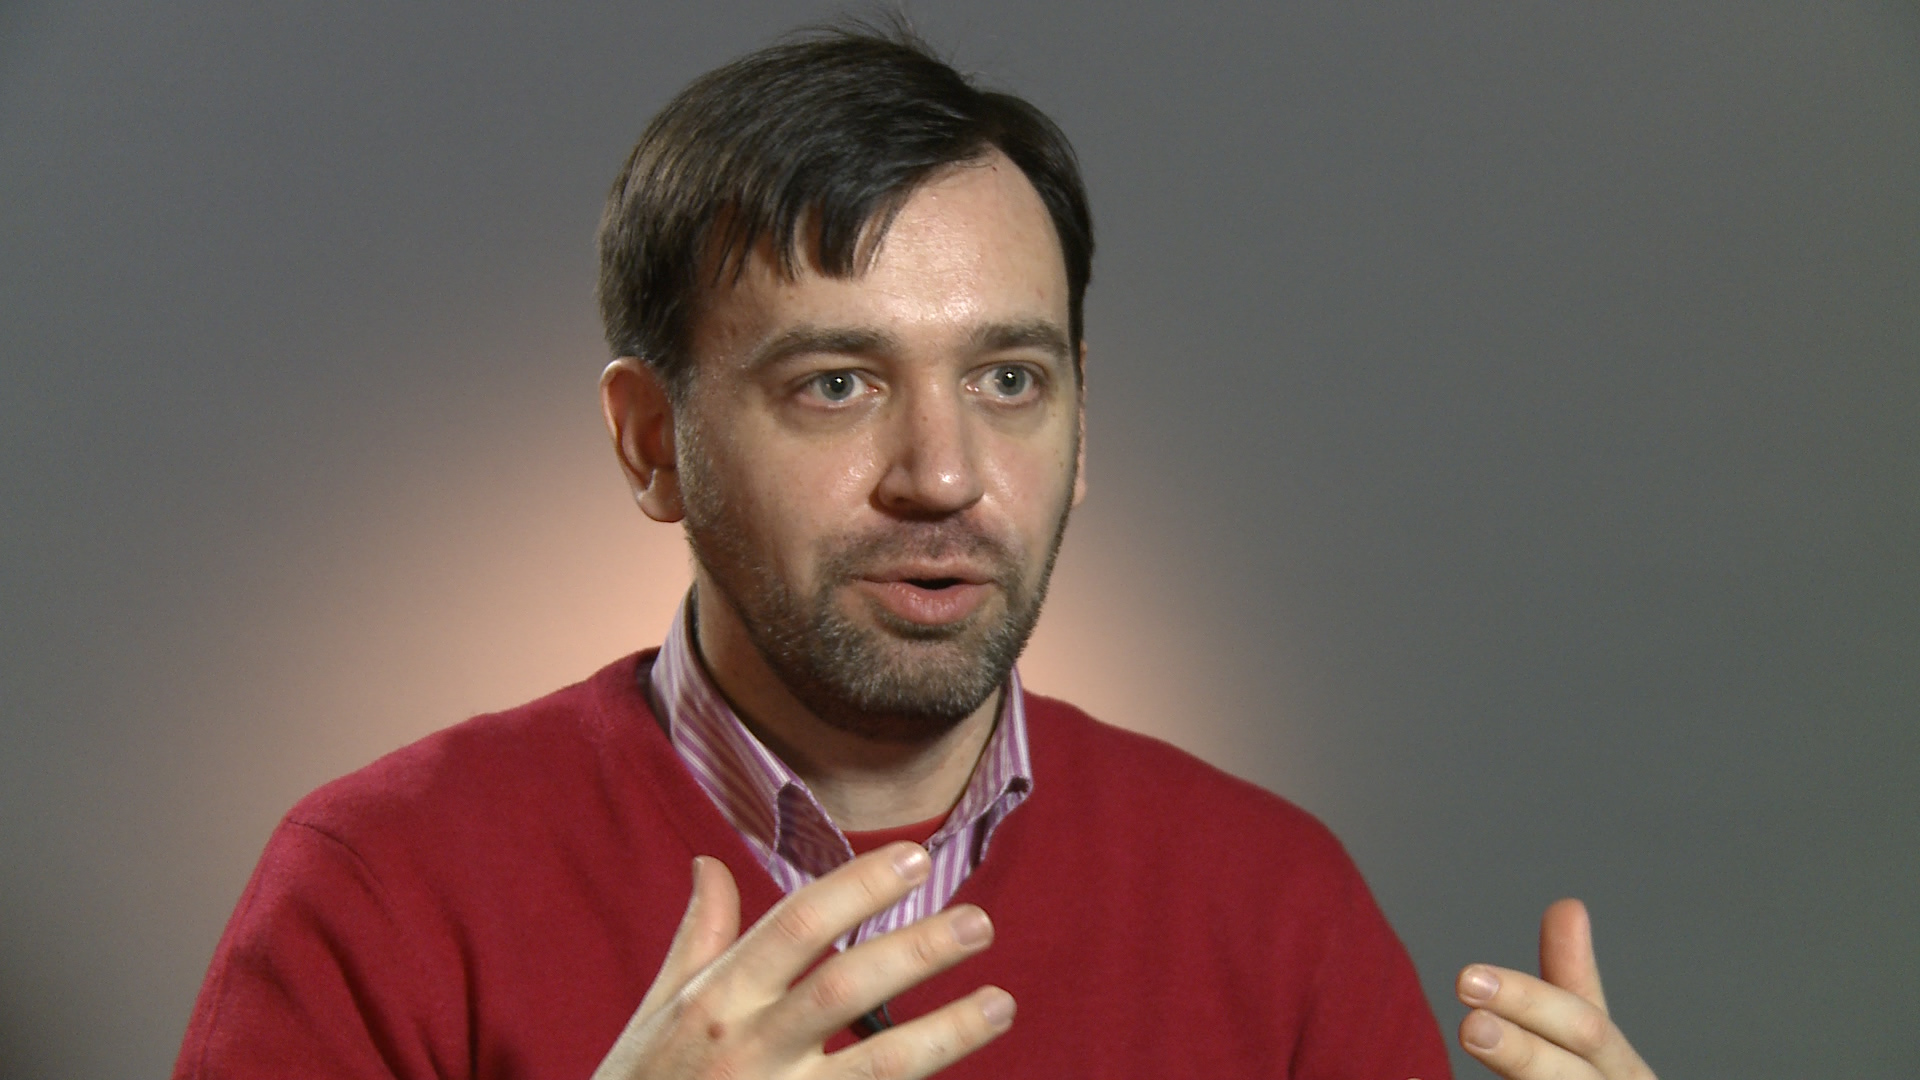 Yevhen Fedchenko, a co-founder of a fact-checking website stopfake.org and director of journalism school in Kiev. PHOTO: Re:Baltica/Mistrus Media